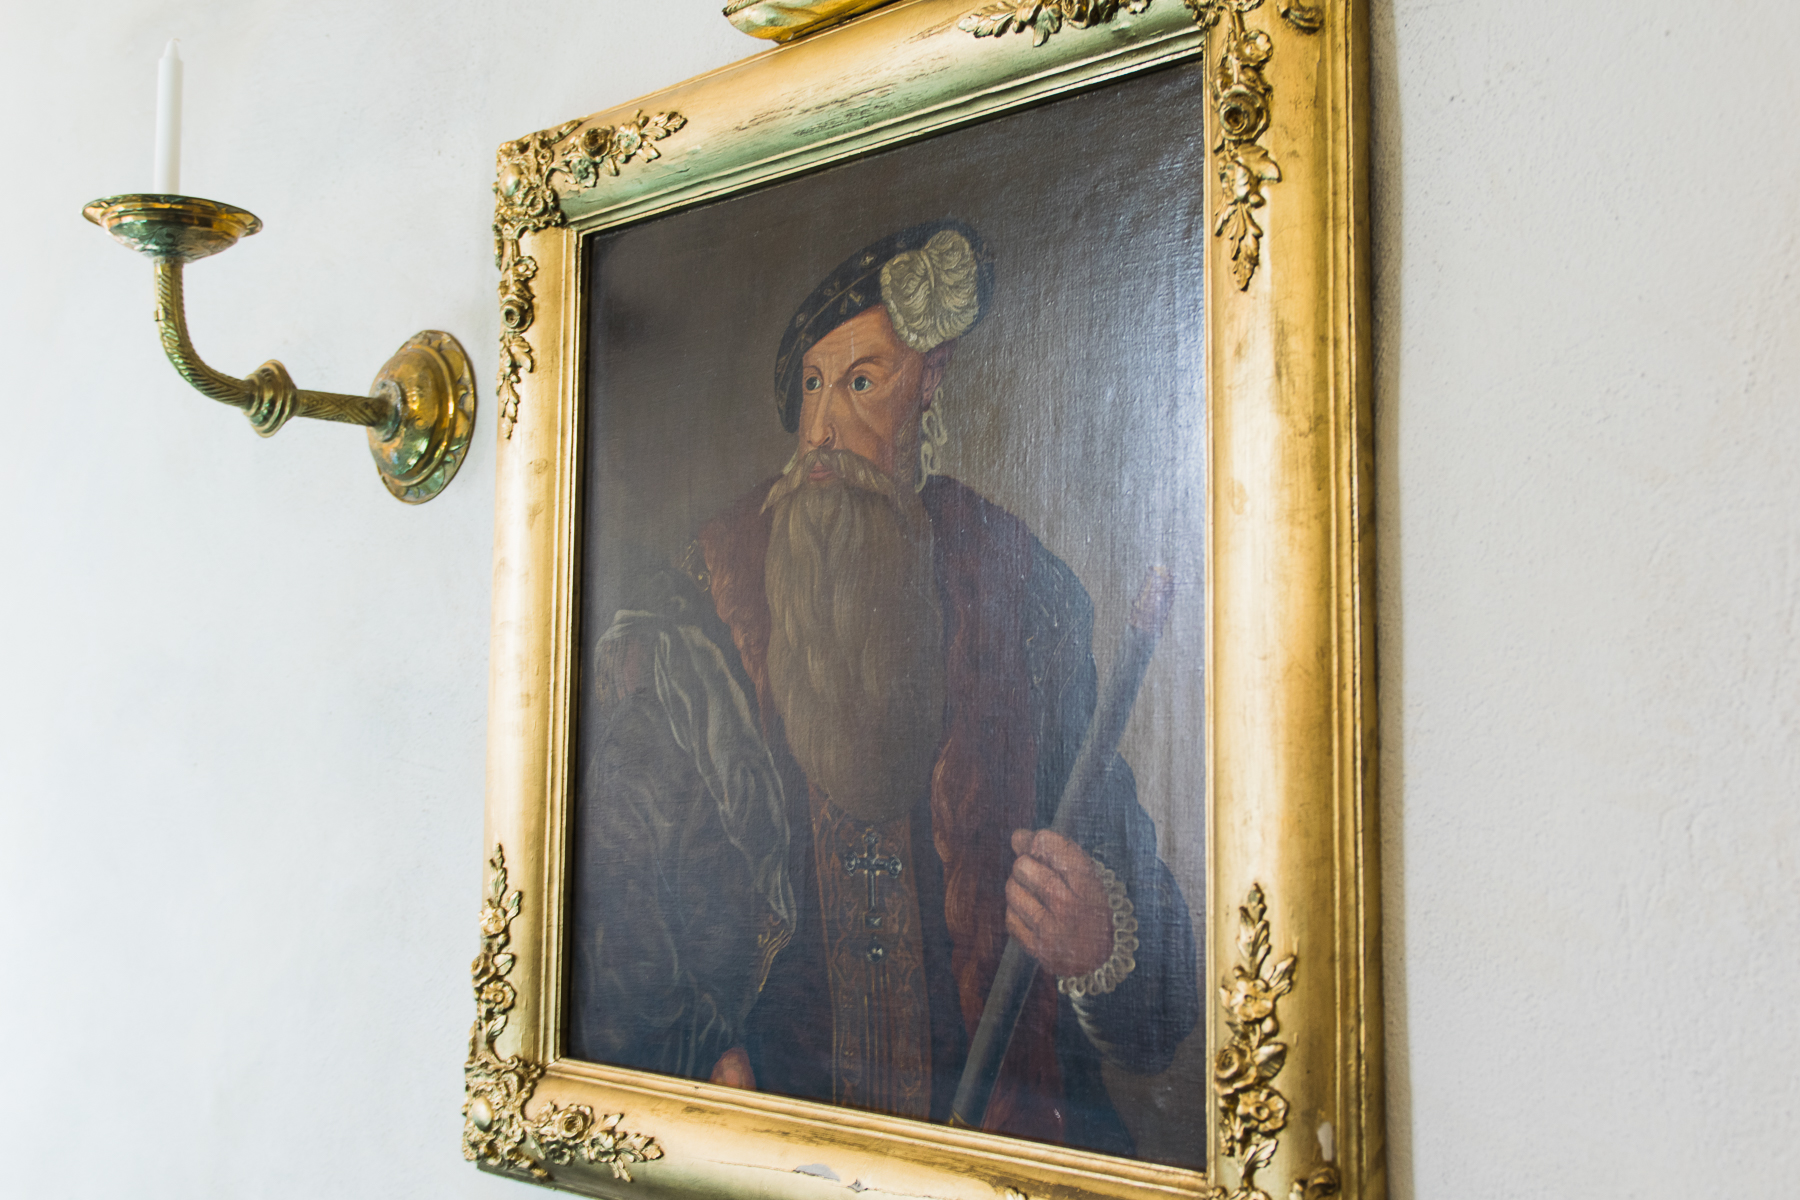 Painting of Gustav Wasa